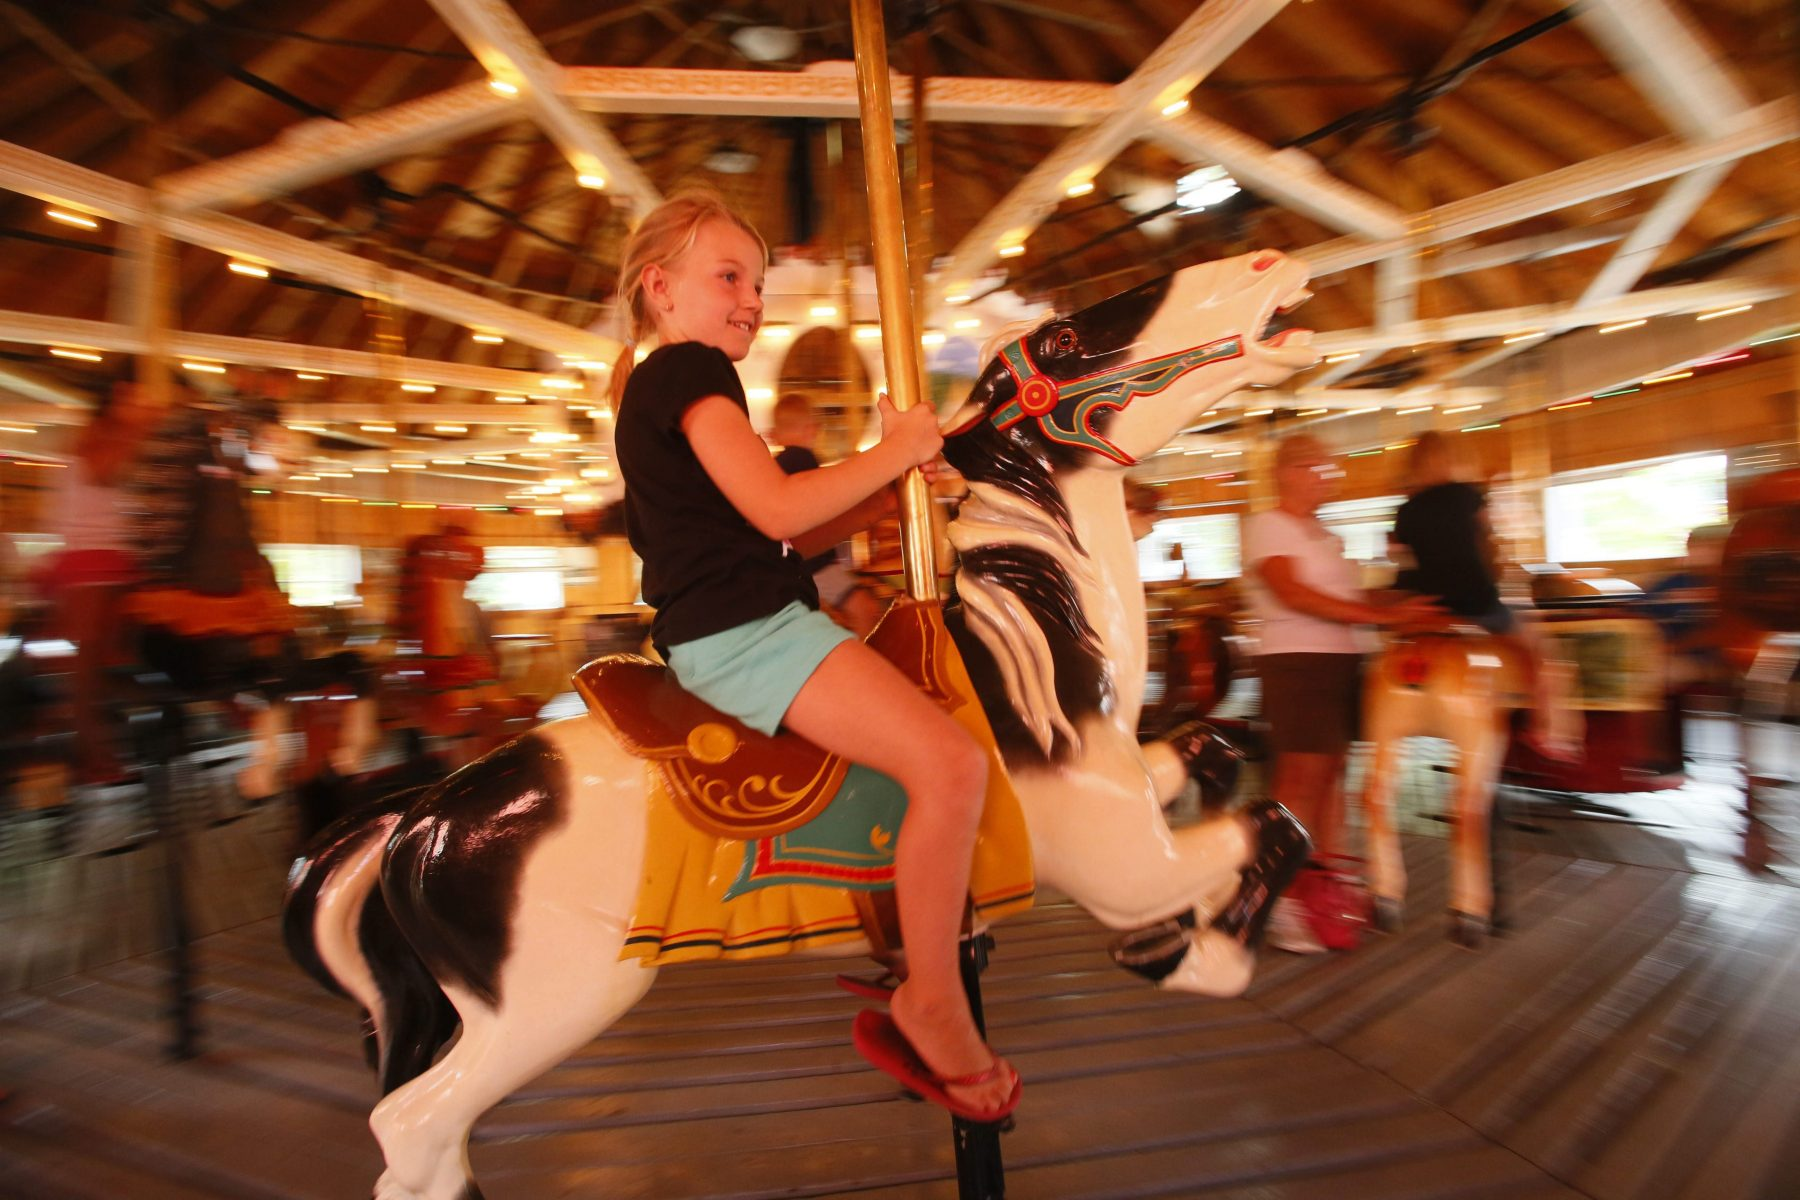 Madison Warthling goes for a ride at the Herschell Carrousel Factory Museum in North Tonawanda. (Derek Gee/News file photo)